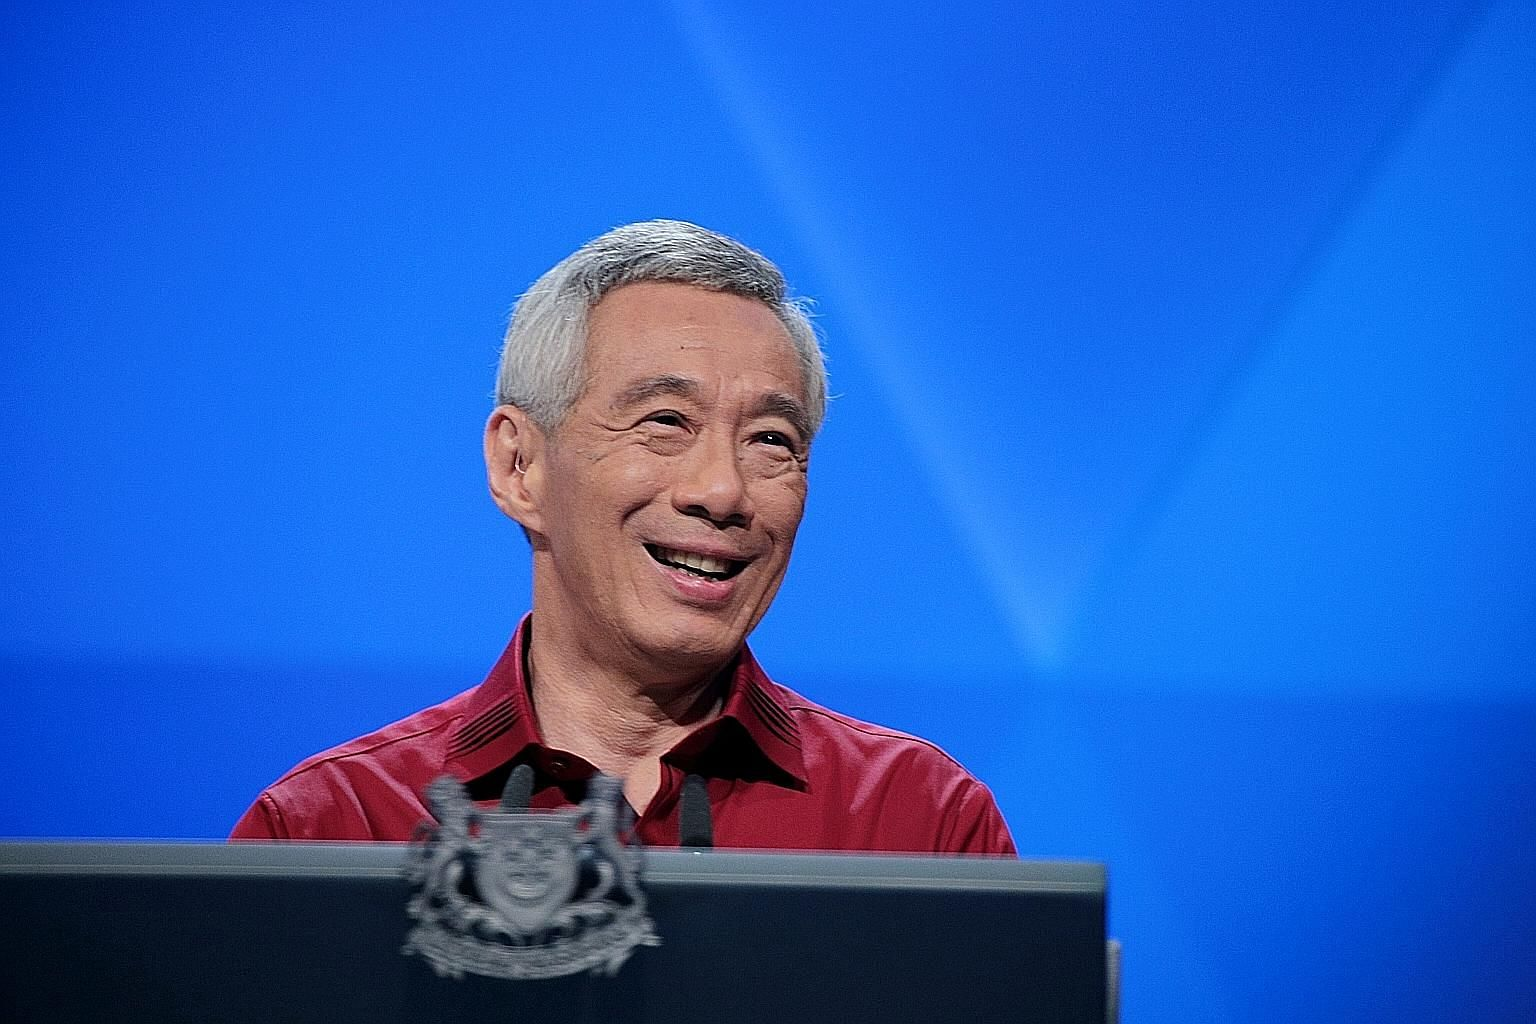 Prime Minister Lee Hsien Loong making his National Day Rally speech at the Institute of Technical Education College Central in Ang Mo Kio yesterday. ST PHOTO: JASON QUAH